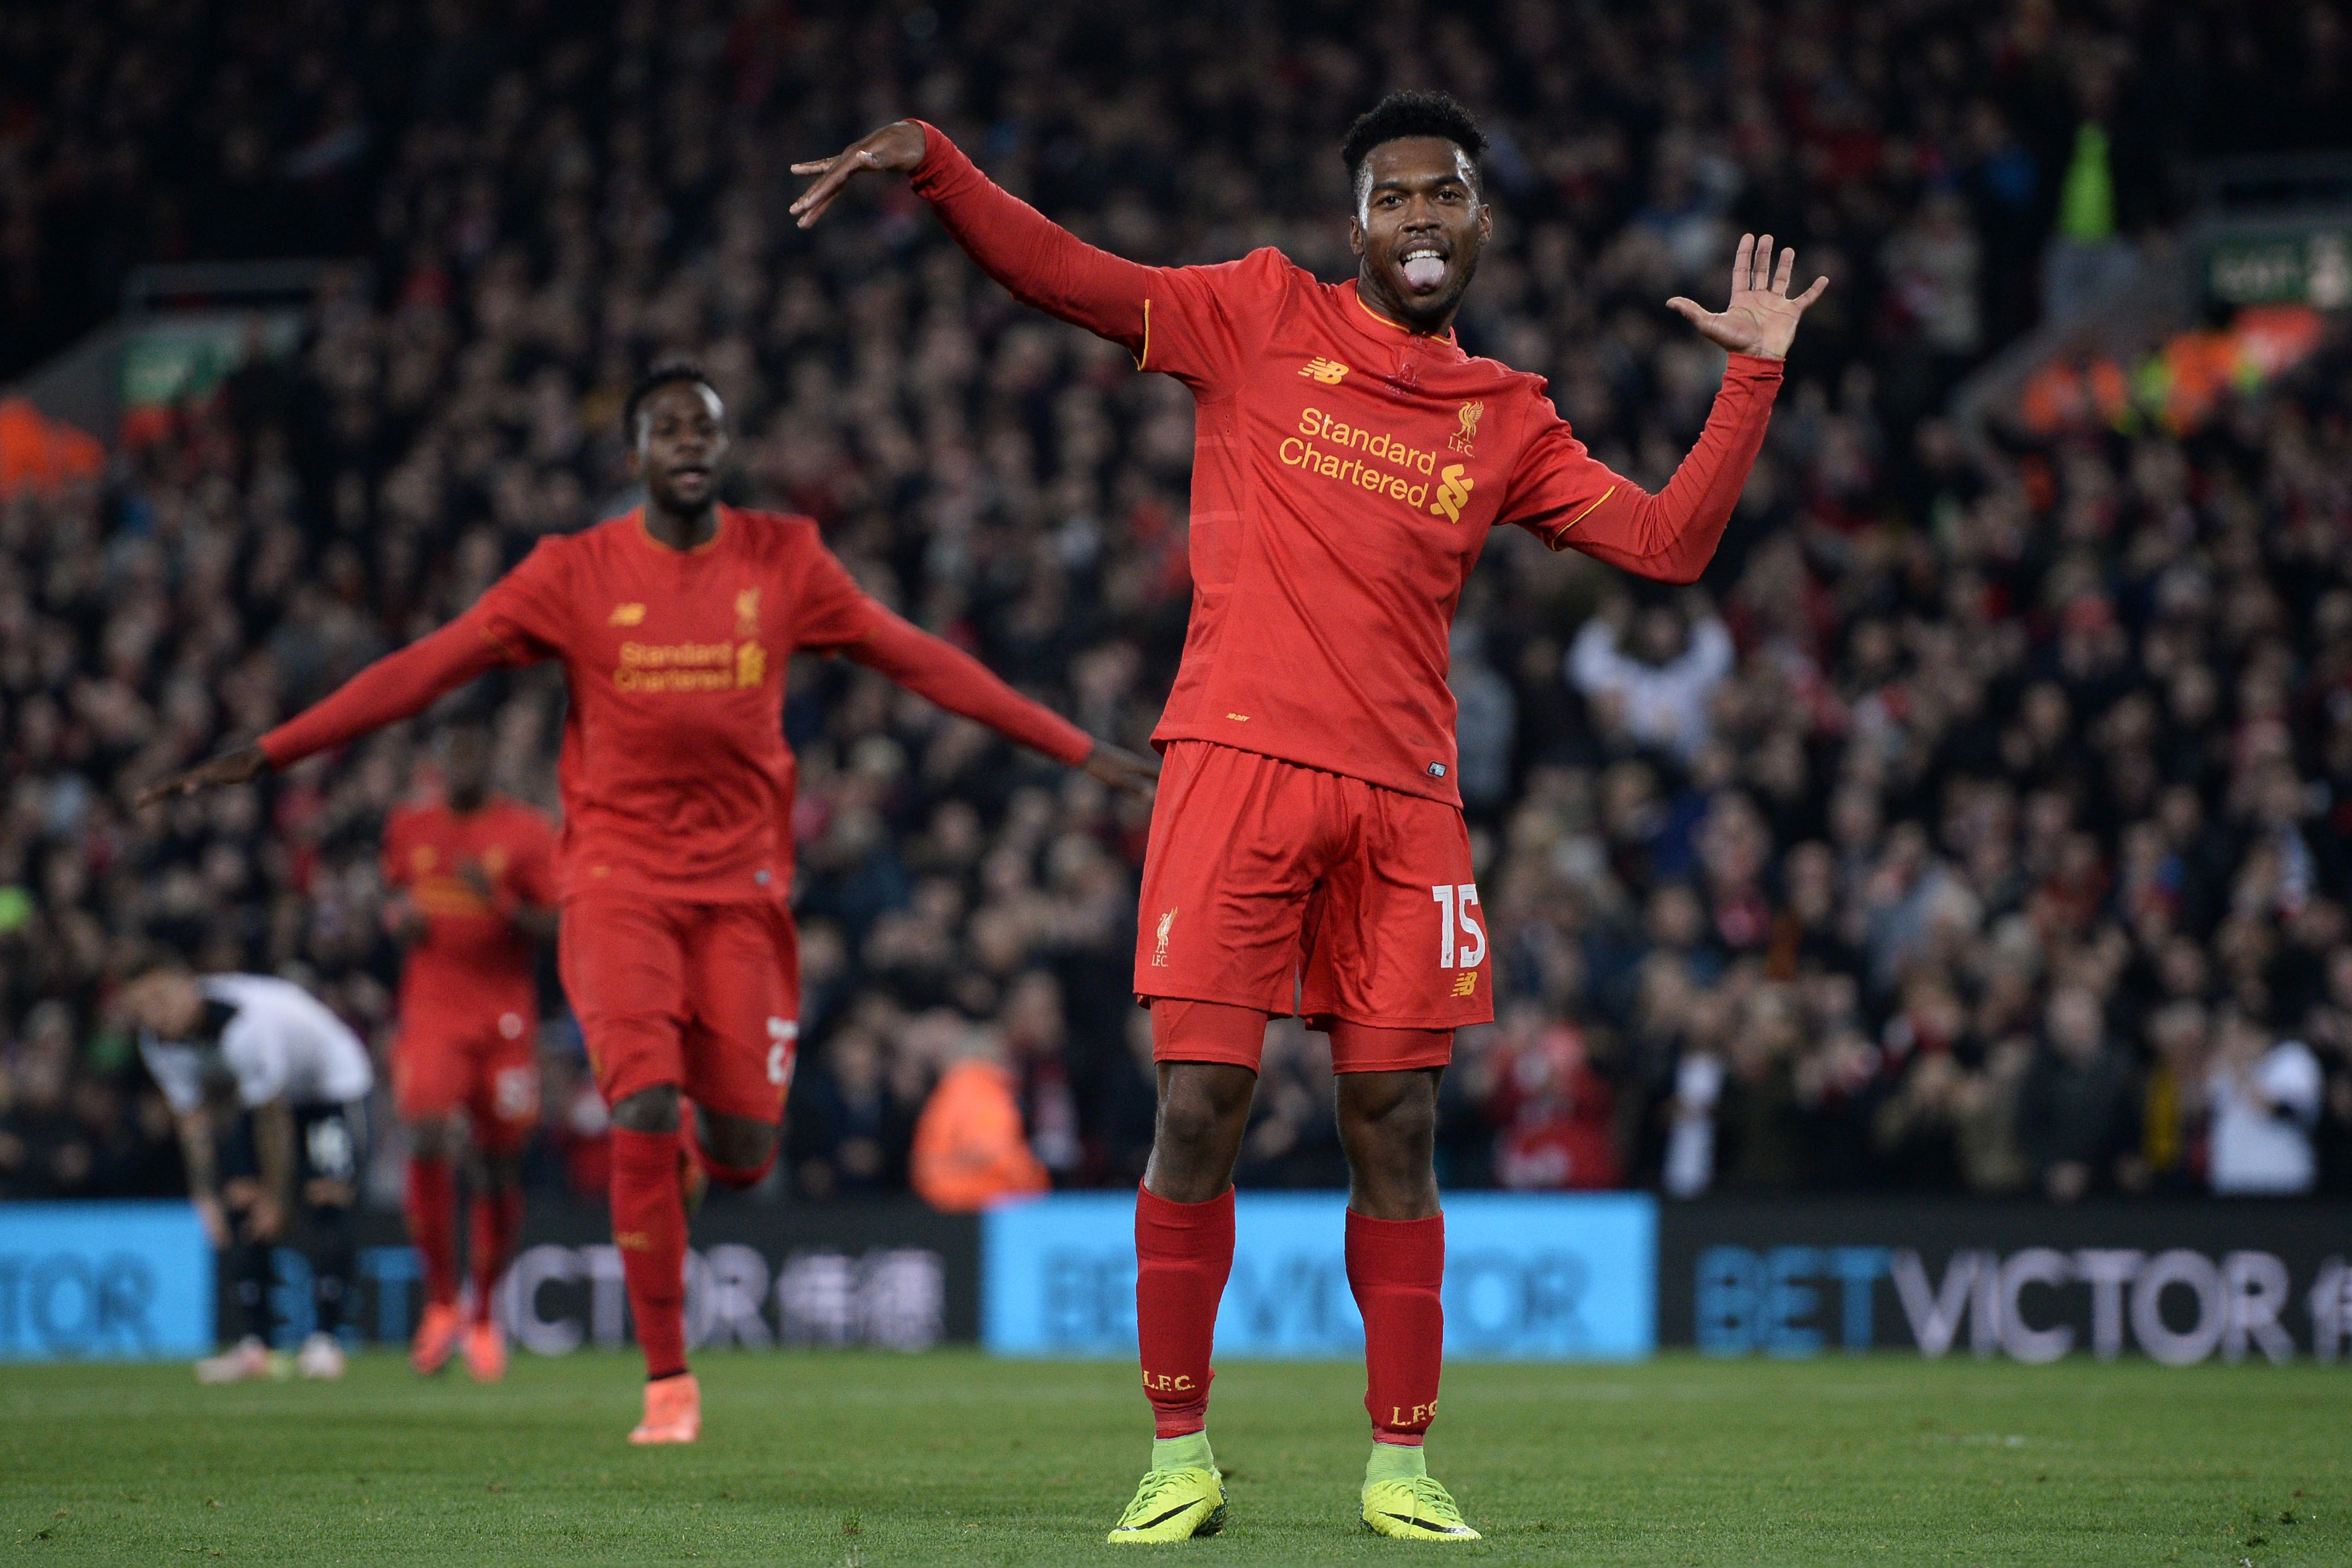 Liverpool 2-1 Tottenham Player Ratings: Daniel Sturridge fires on all cylinders, but Alberto Moreno remains poor